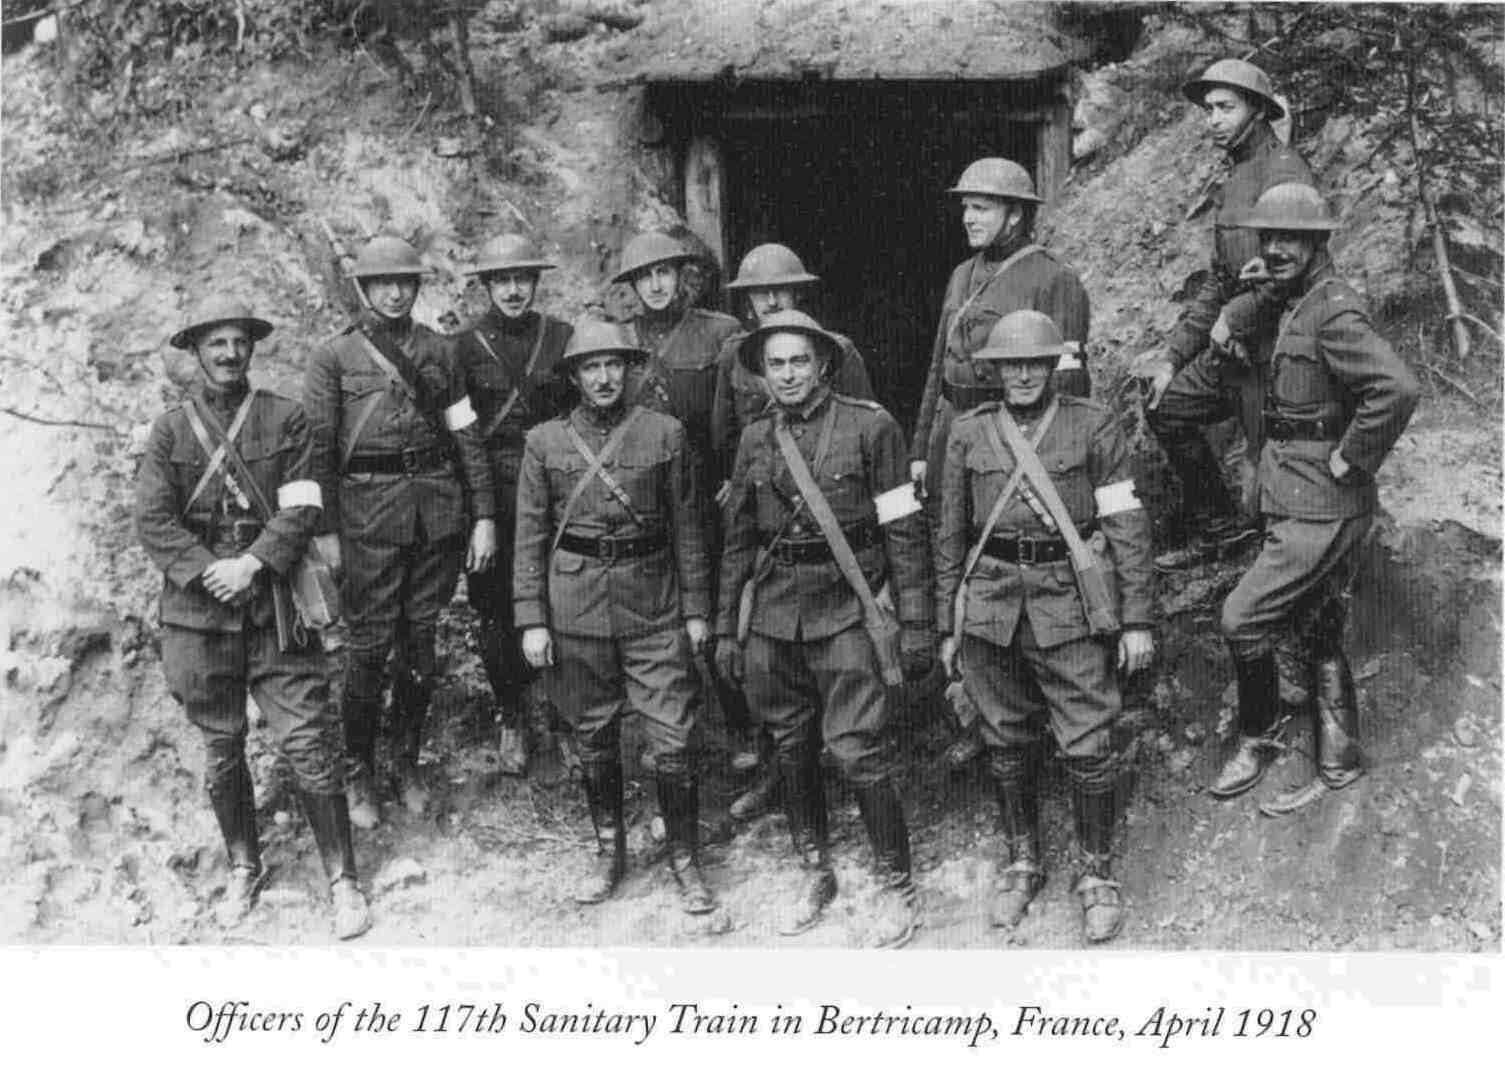 American Expeditionary Force 117th Sanitary Train World